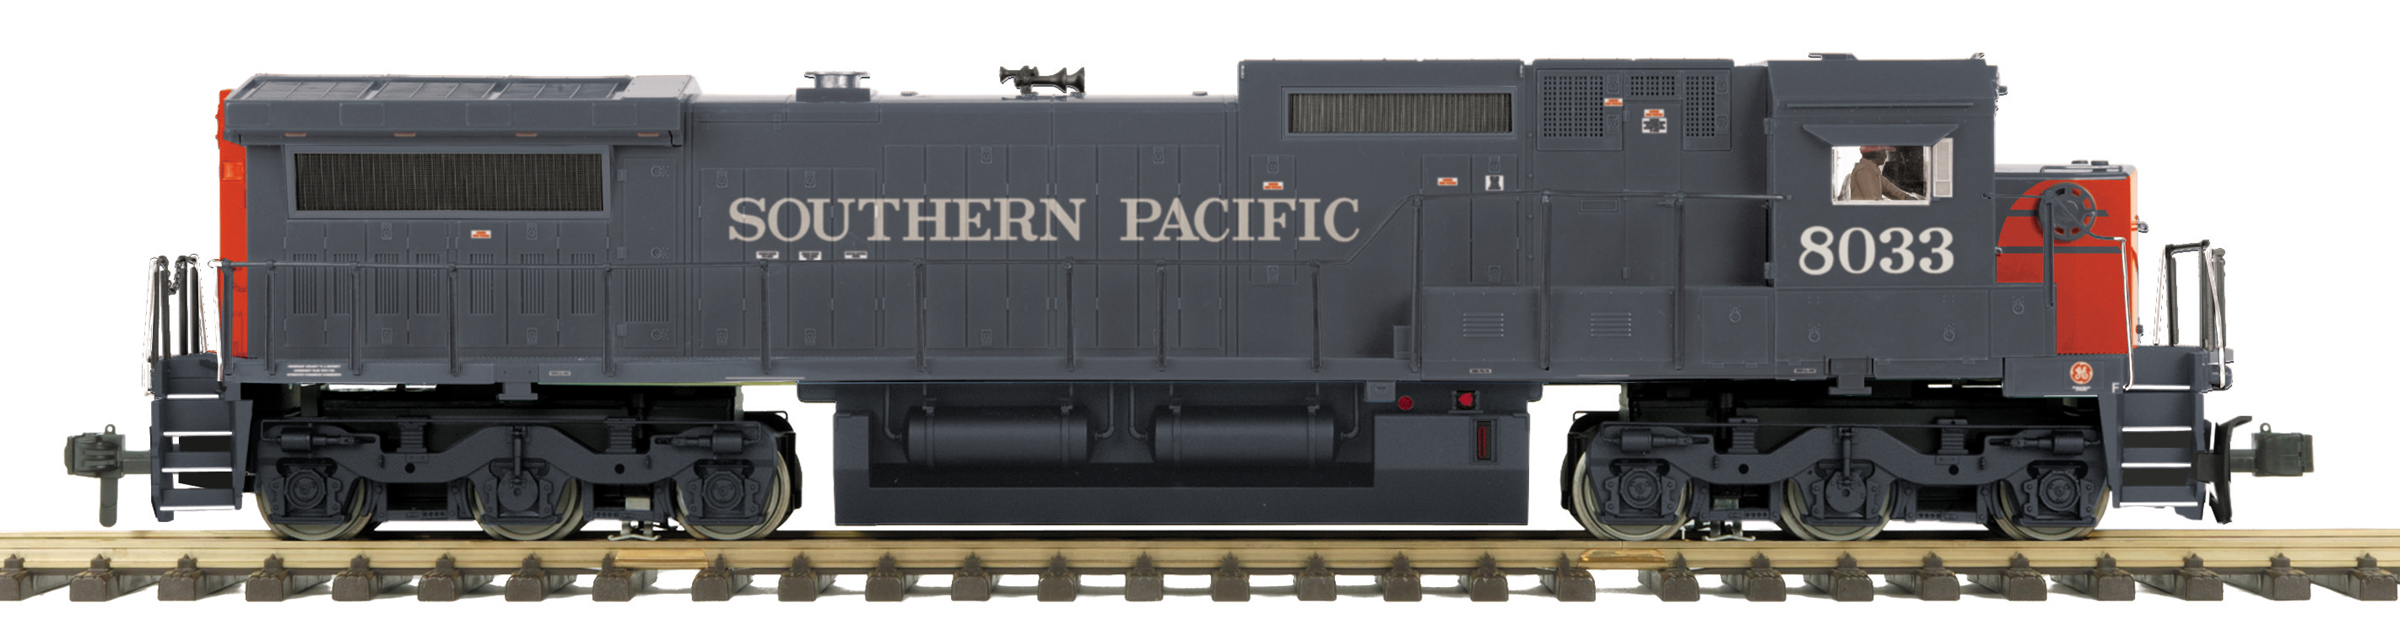 RailKing Dash-8 Diesel Engine Southern Pacific 70-2128-1